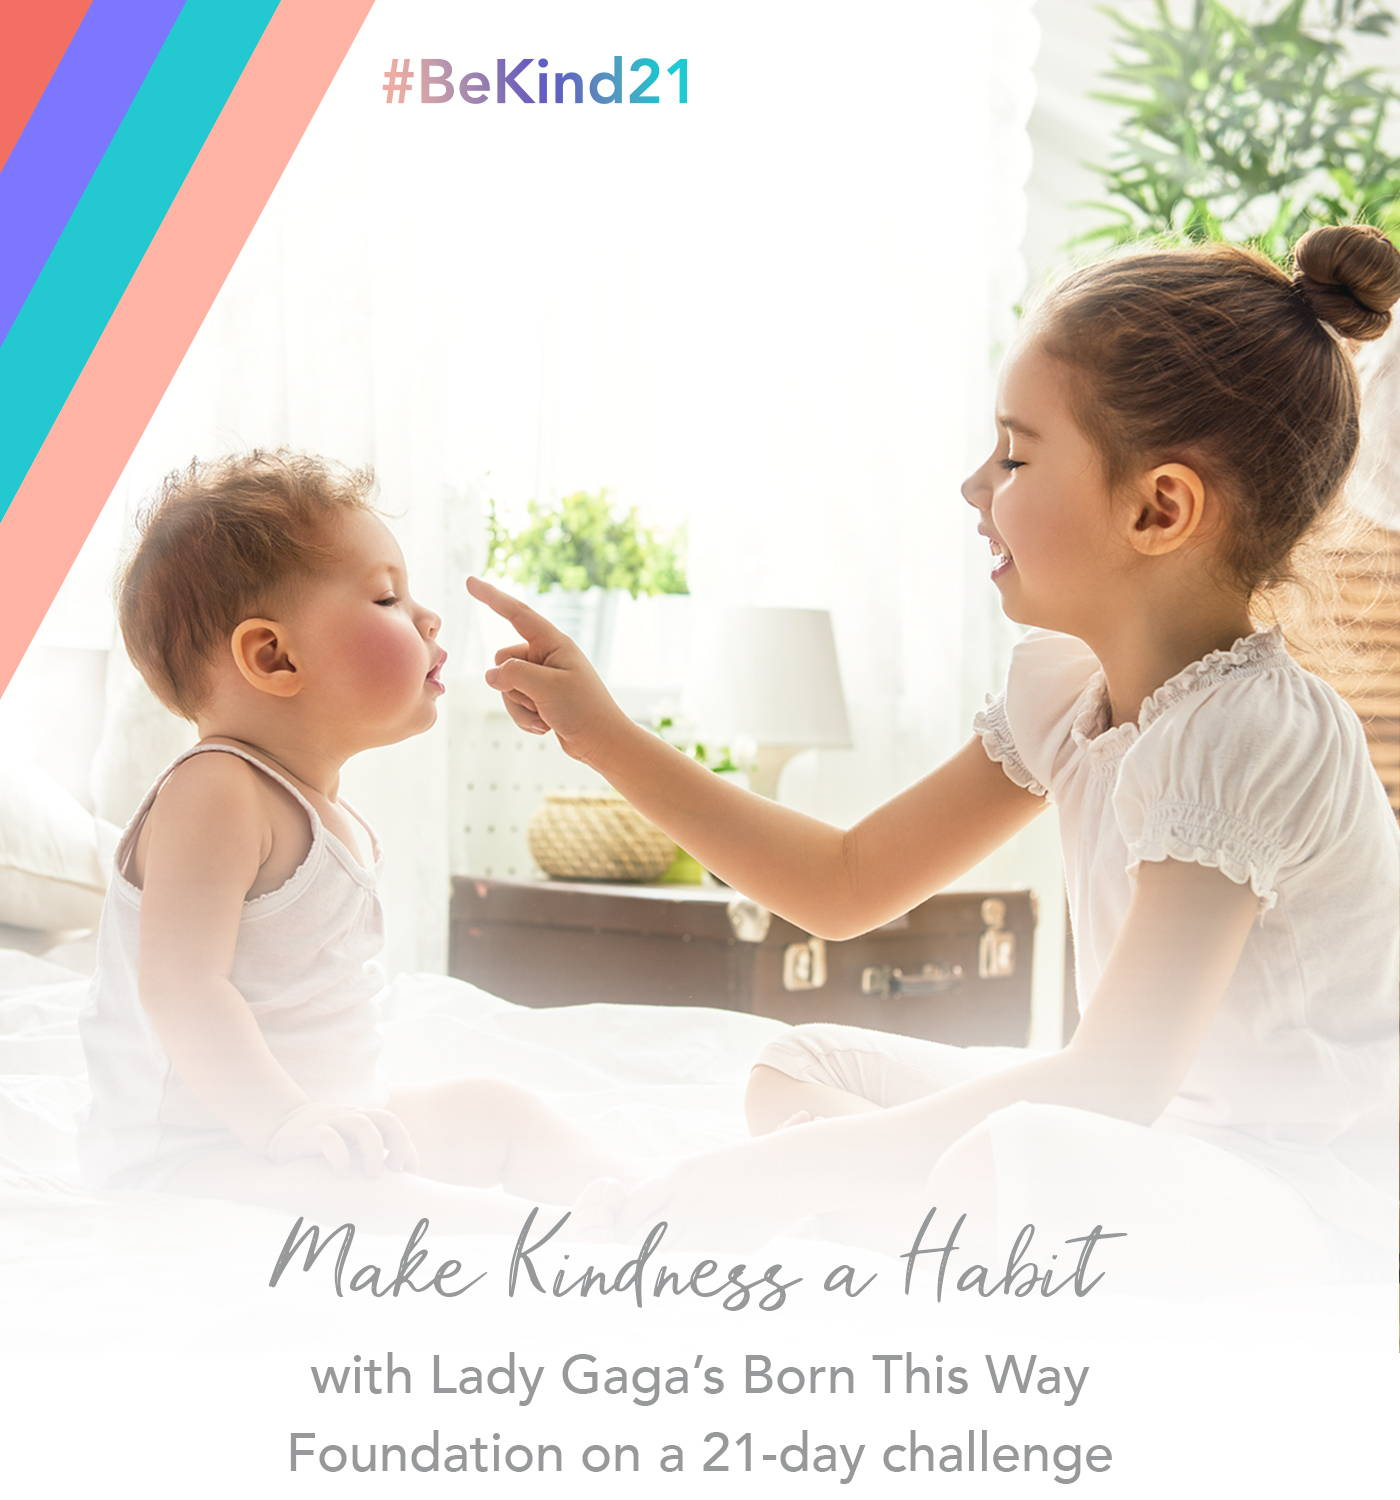 make kindness a habit with lady gaga's born this way foundation on a 21-day challenge